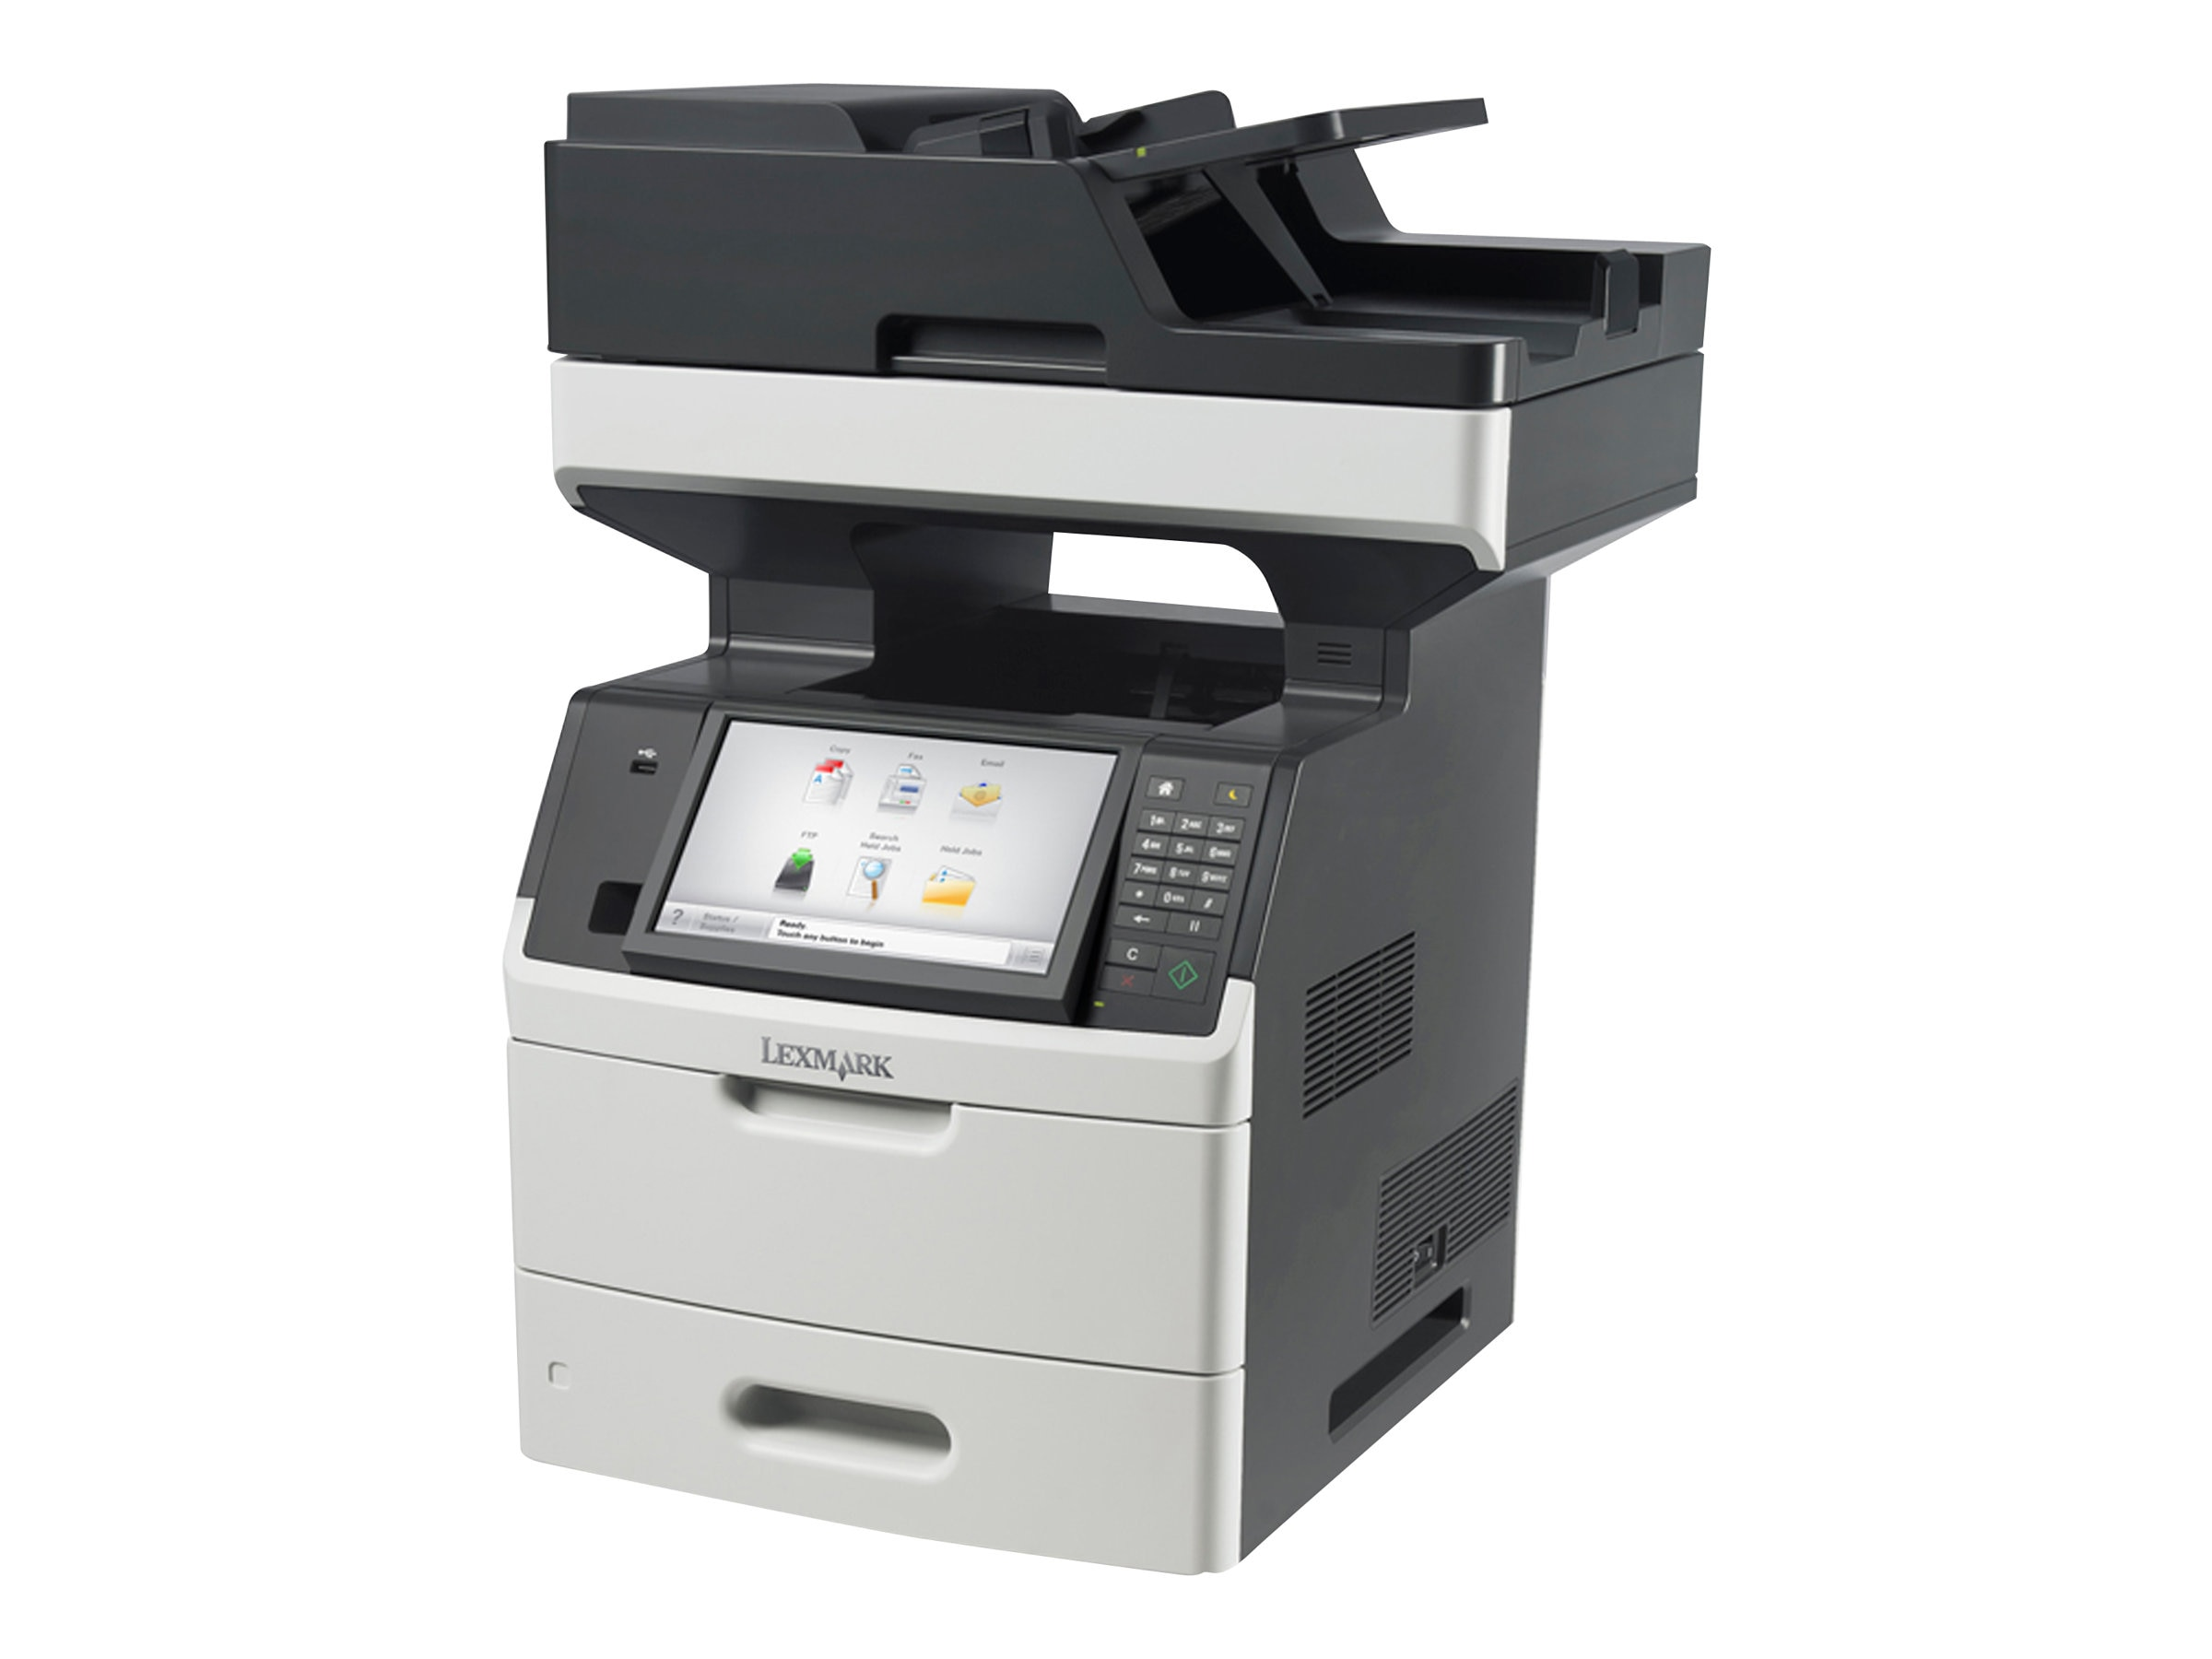 Lexmark MX711de Monochrome Laser Multifunction Printer, 24T7404, 14908491, MultiFunction - Laser (monochrome)